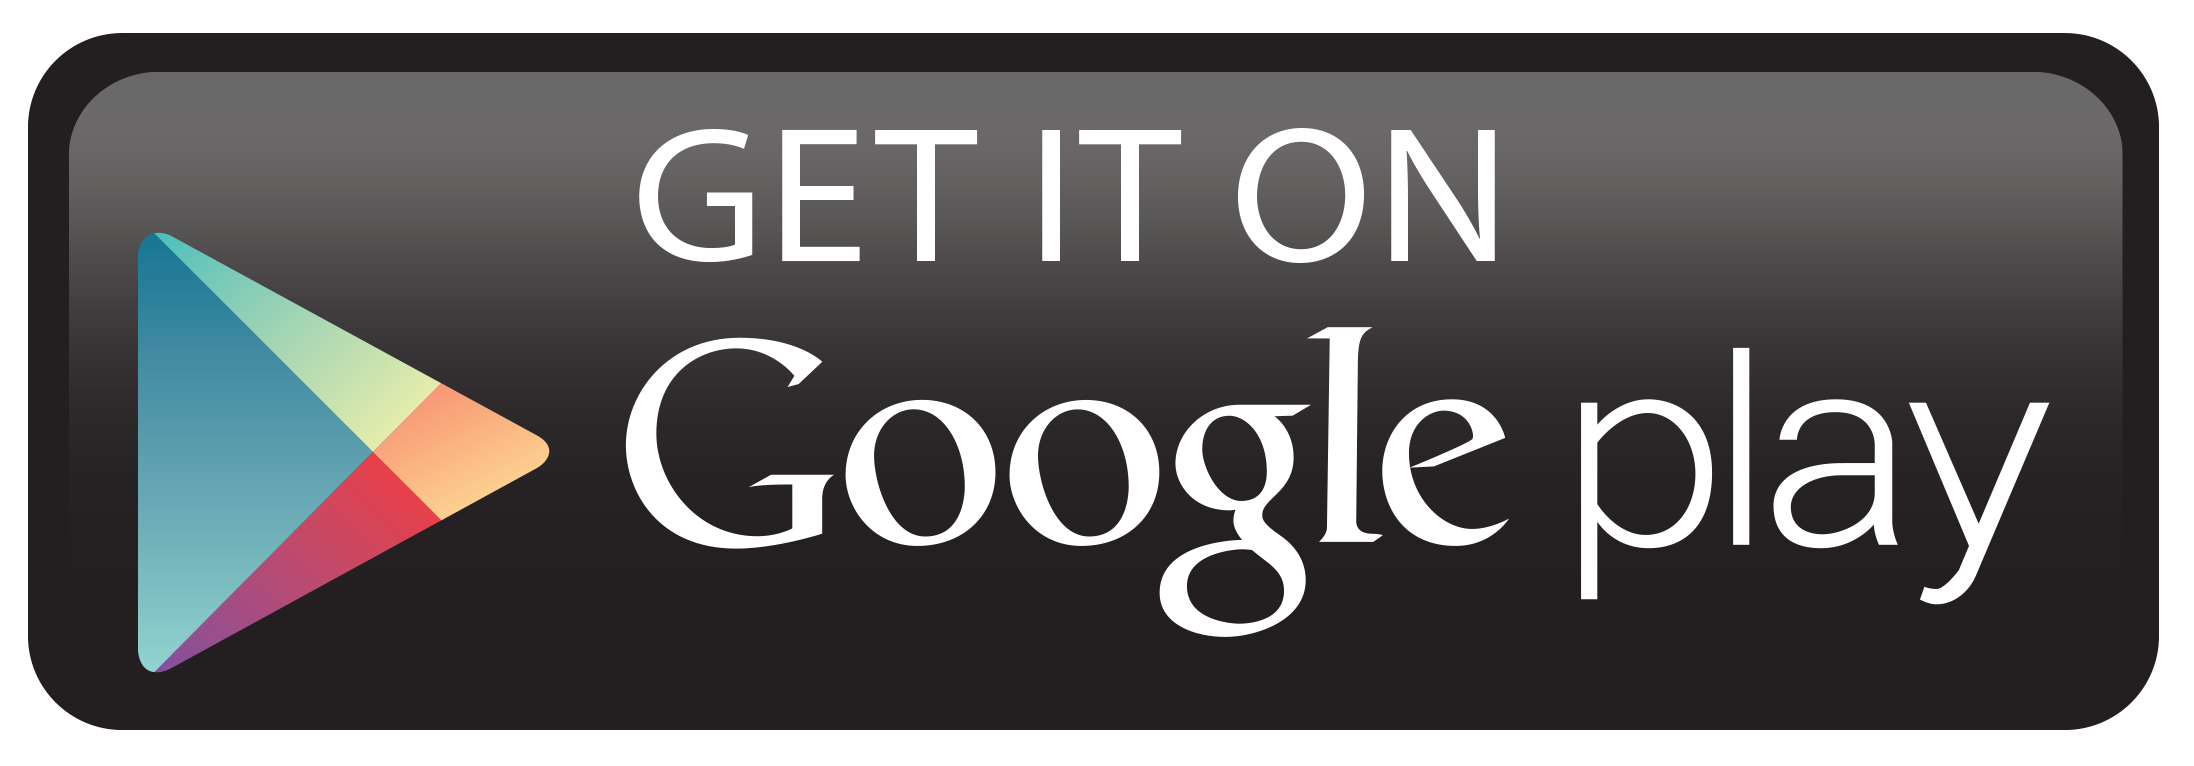 Get It On Google Play Badge Png - Get It On Google Play Badge Png Hdpng.com 2194, Transparent background PNG HD thumbnail